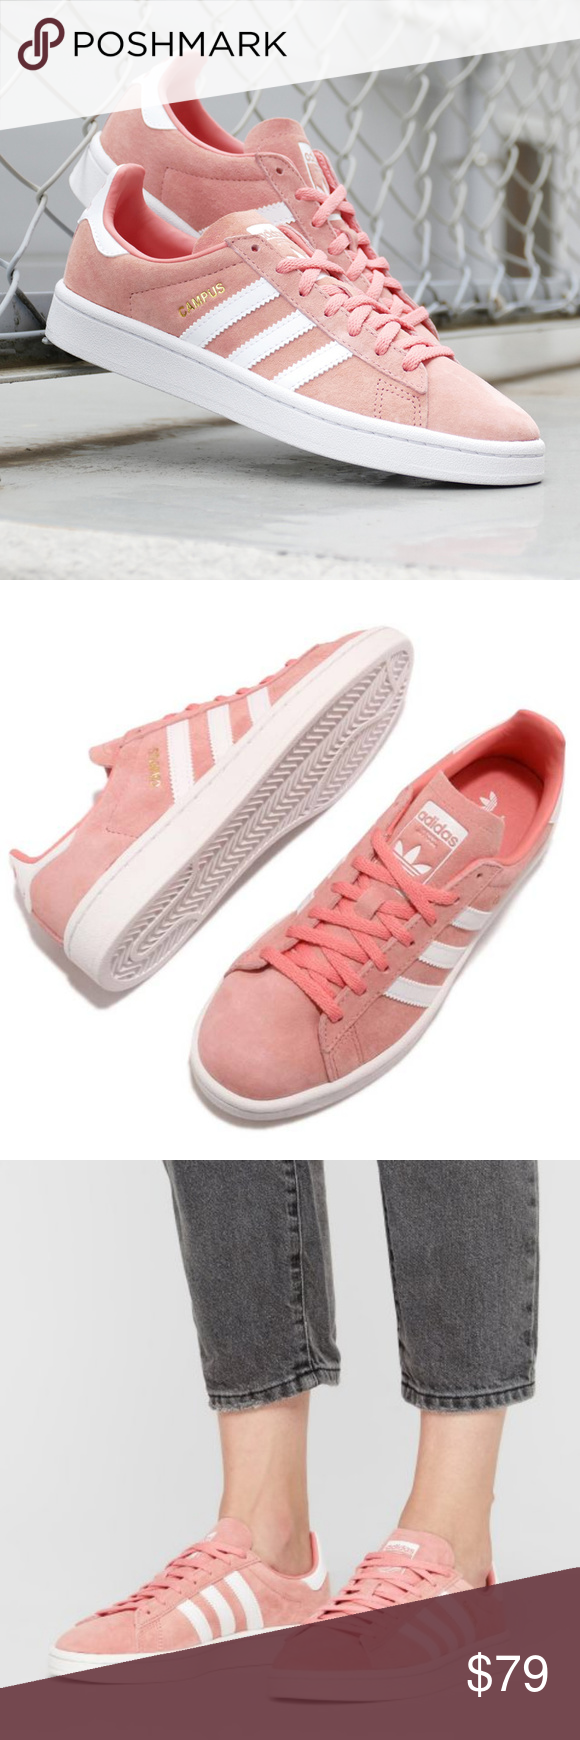 adidas rose prem mini